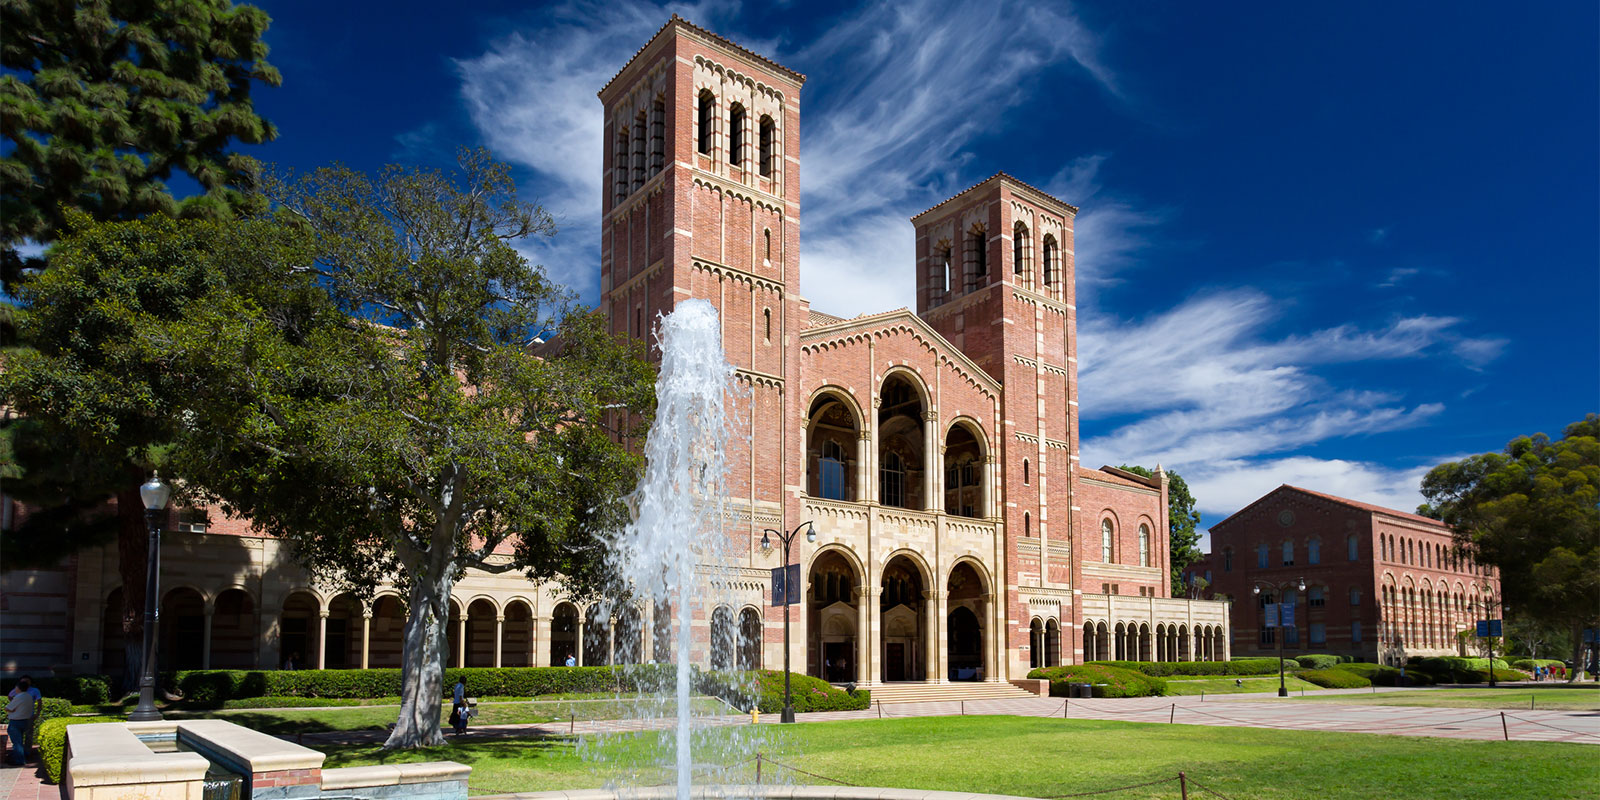 From Community College to the University of California